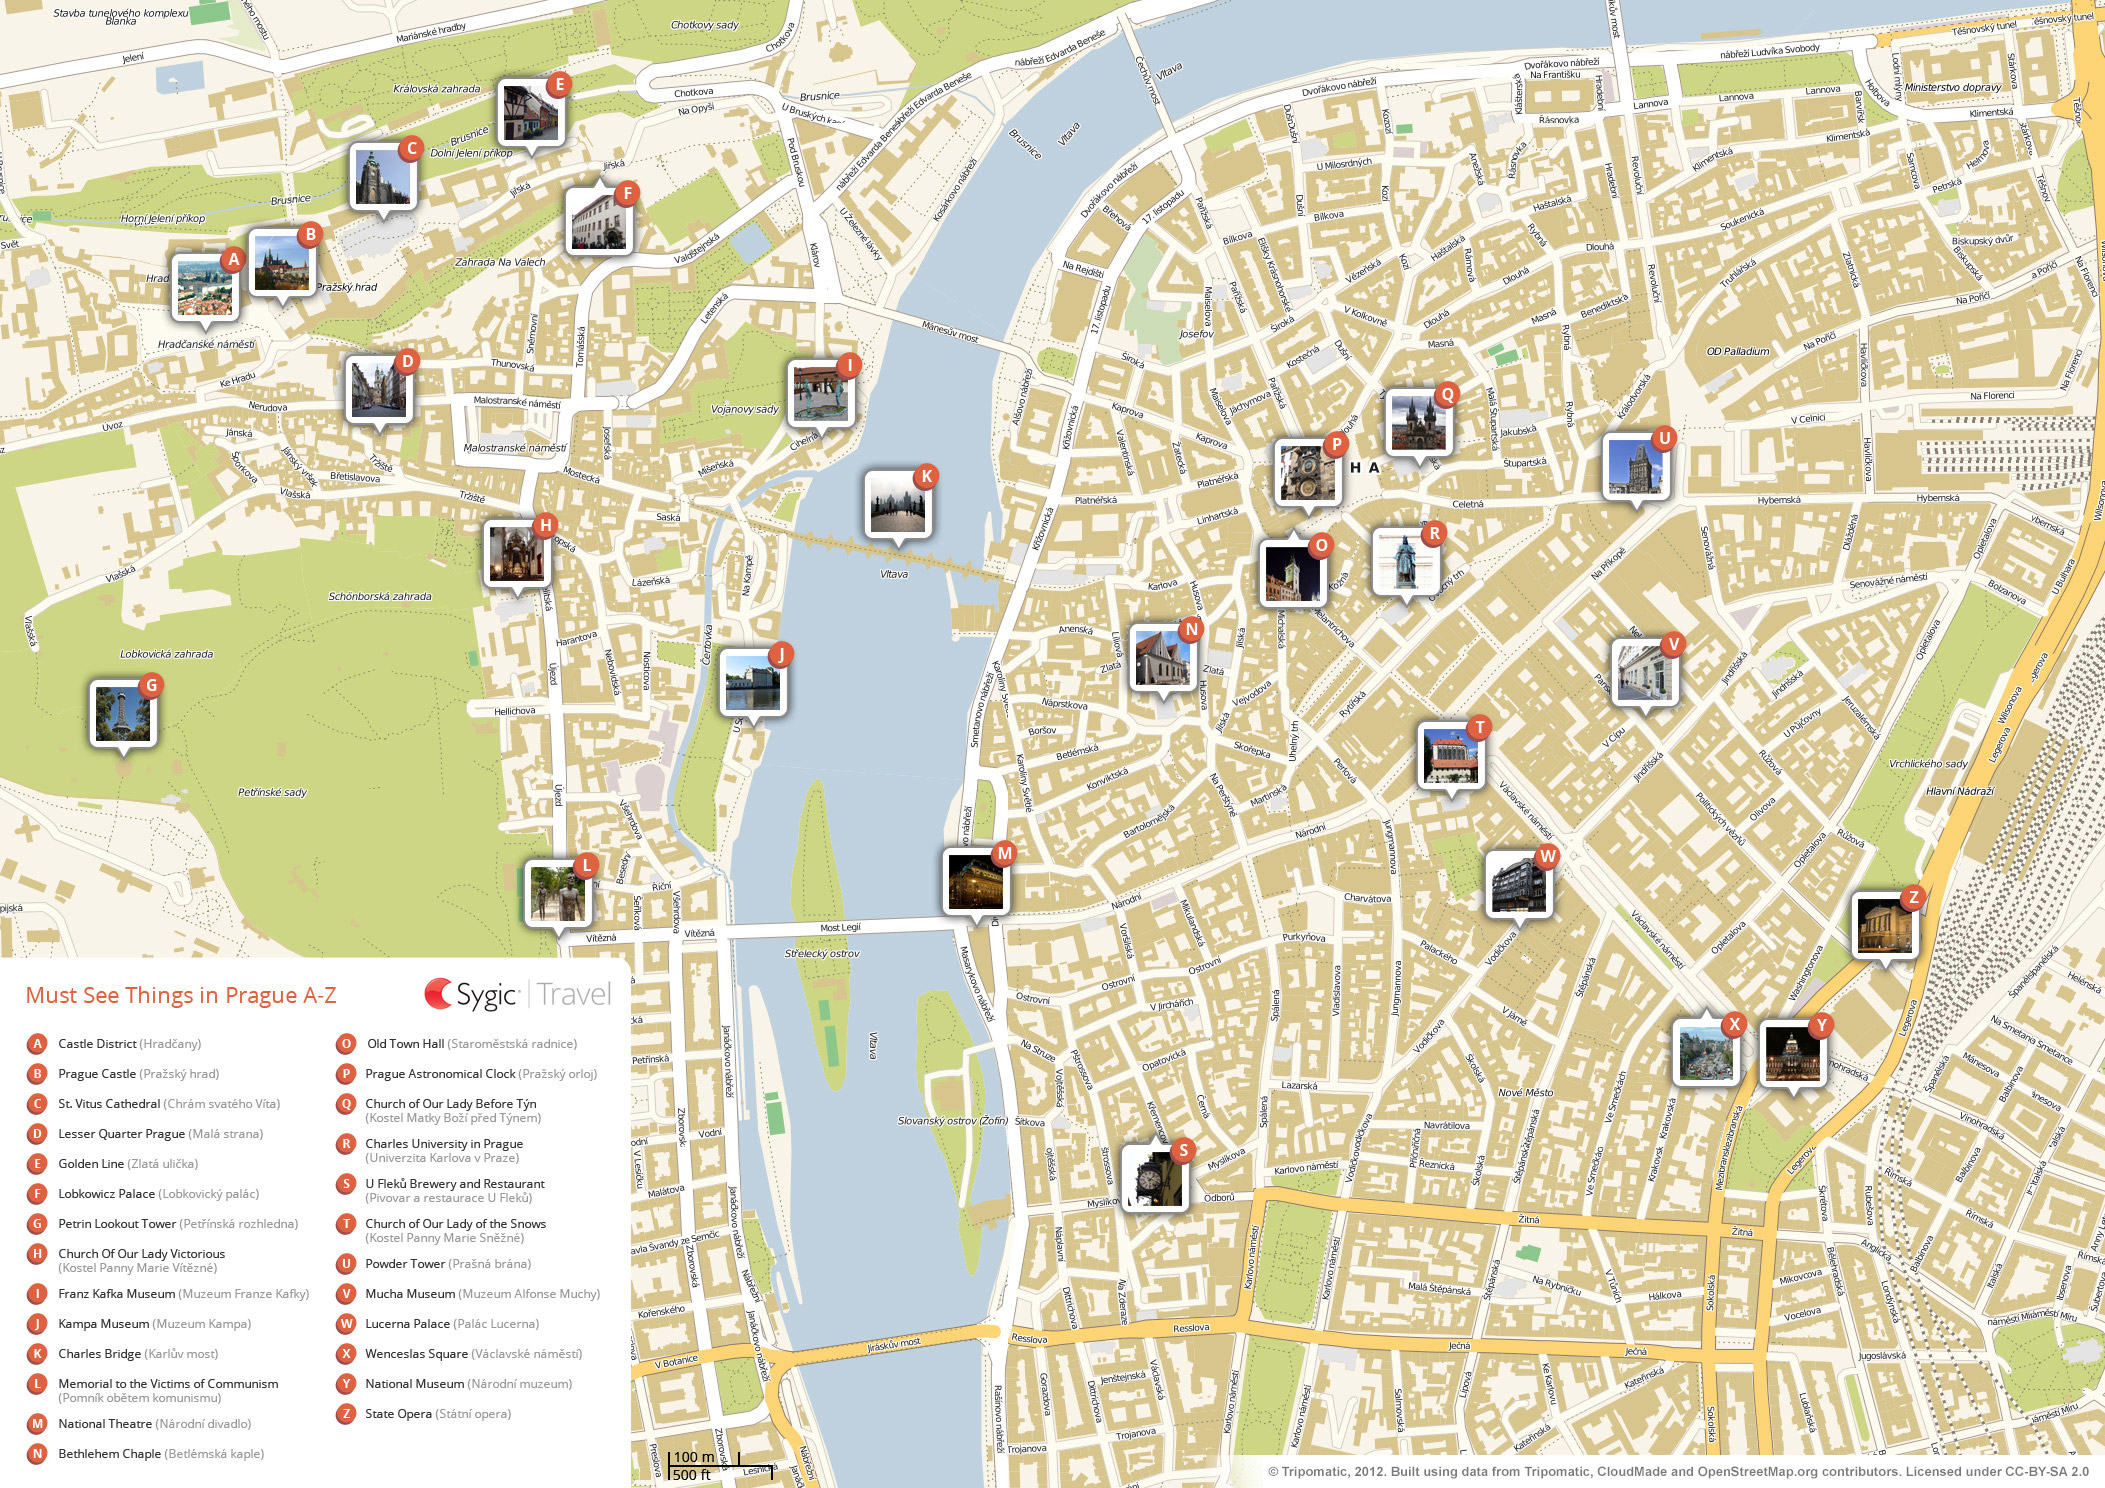 Prague Printable Tourist Map – Printable Tourist Map Of London Attractions